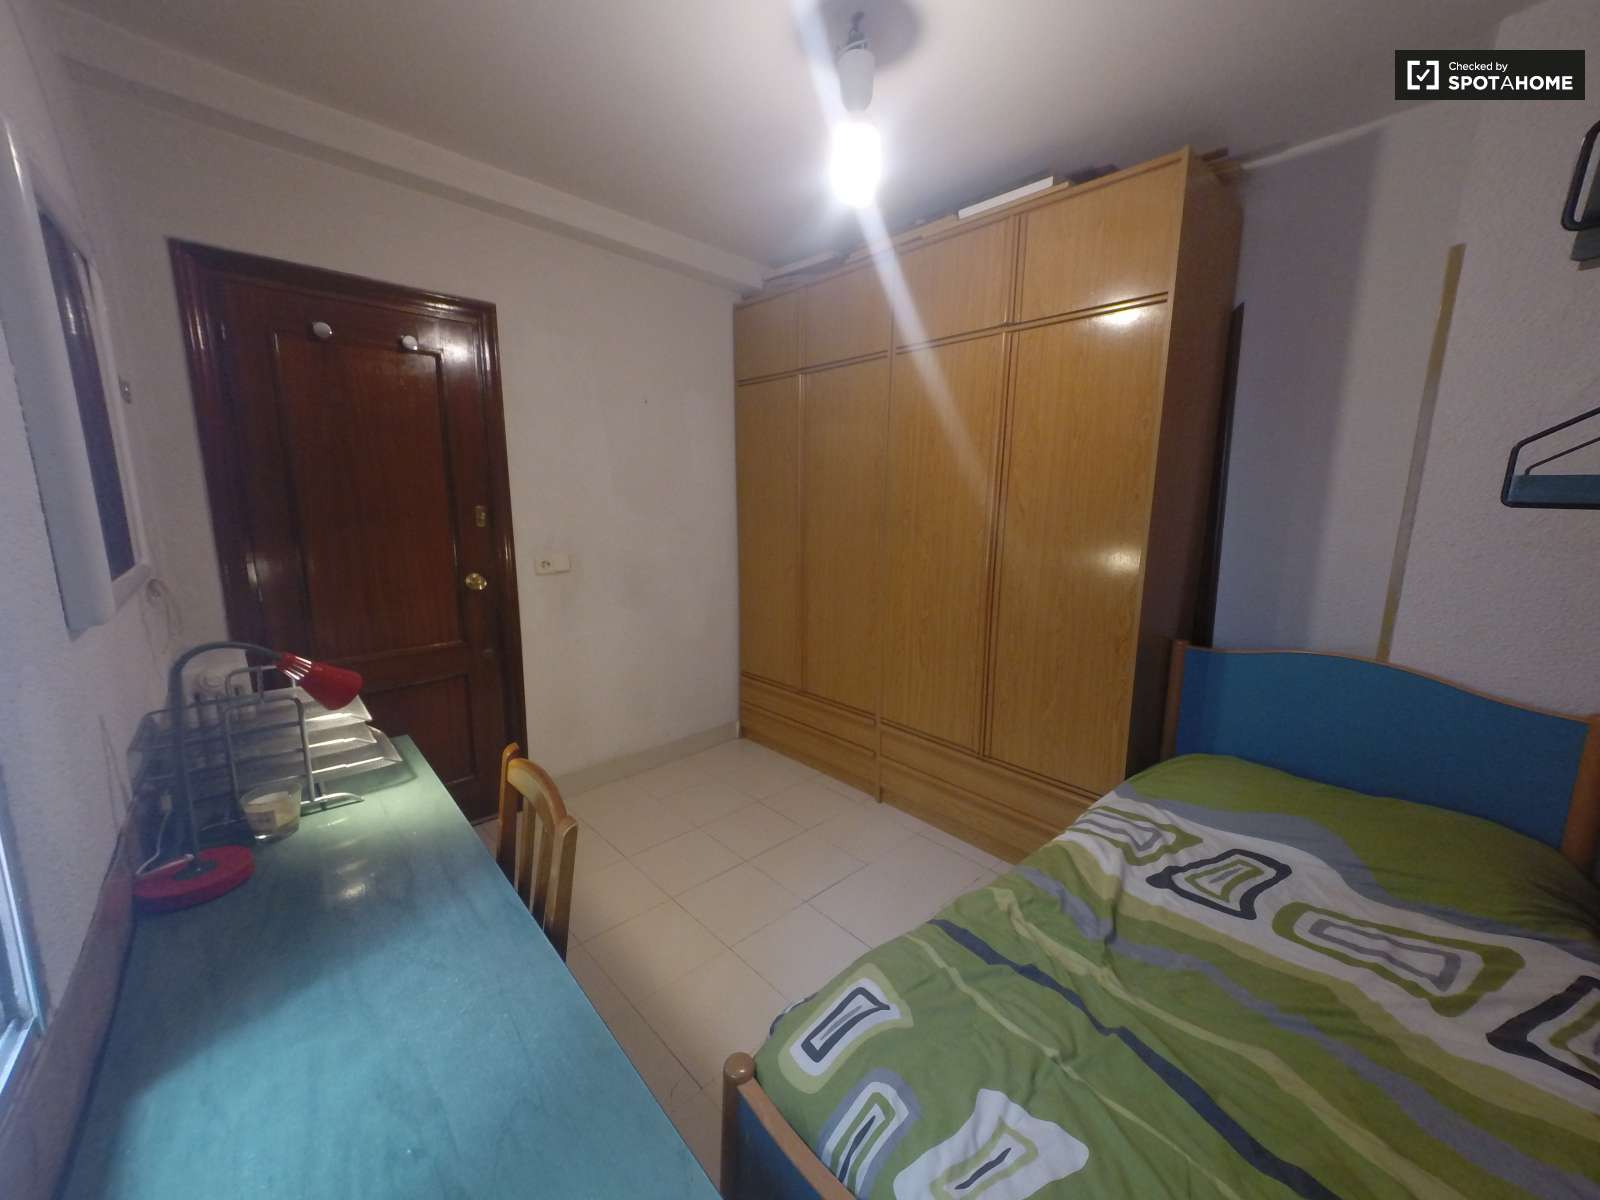 Single Bed Bedroom Single Bed In Bedrooms For Rent With Metro Access Across The